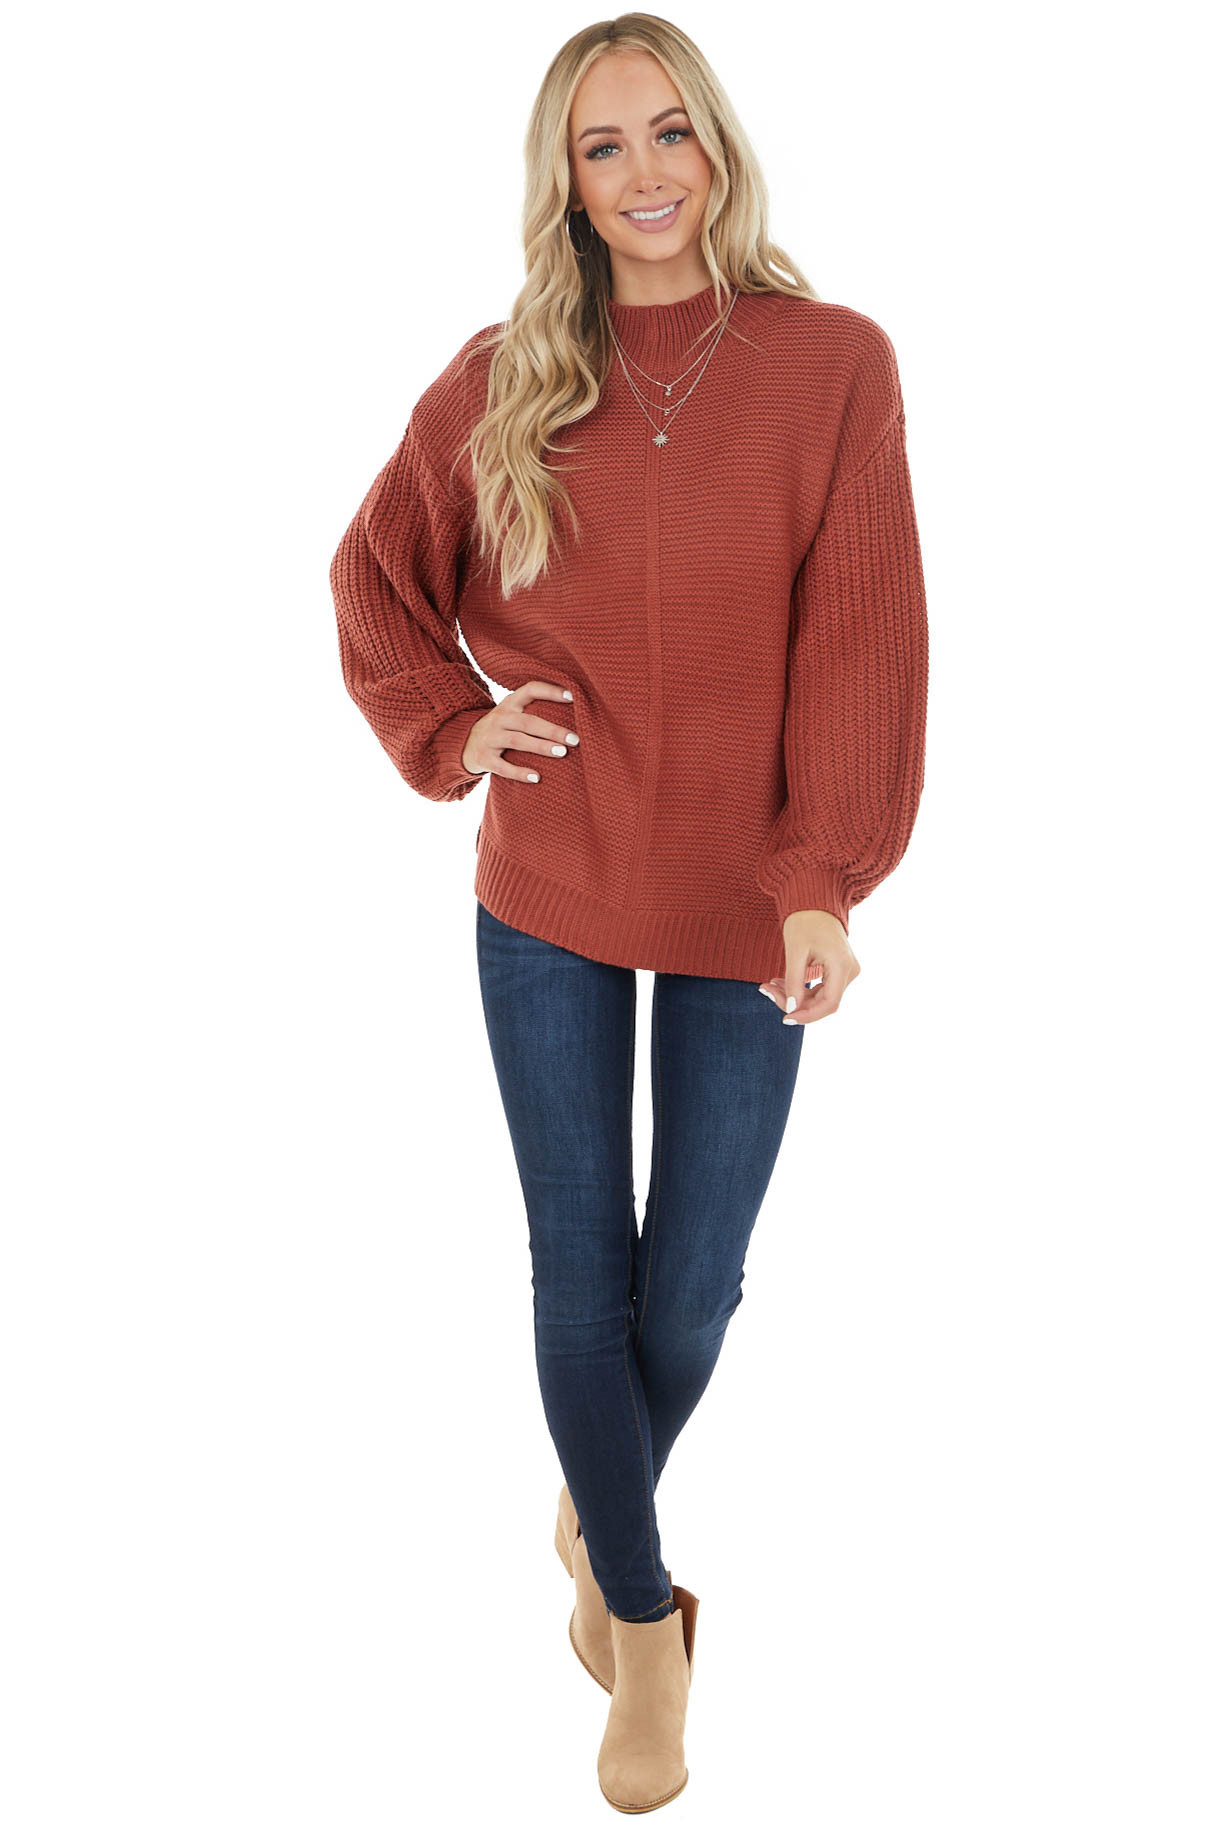 Rust Mock Neck Sweater with Thick Knit Puff Sleeves